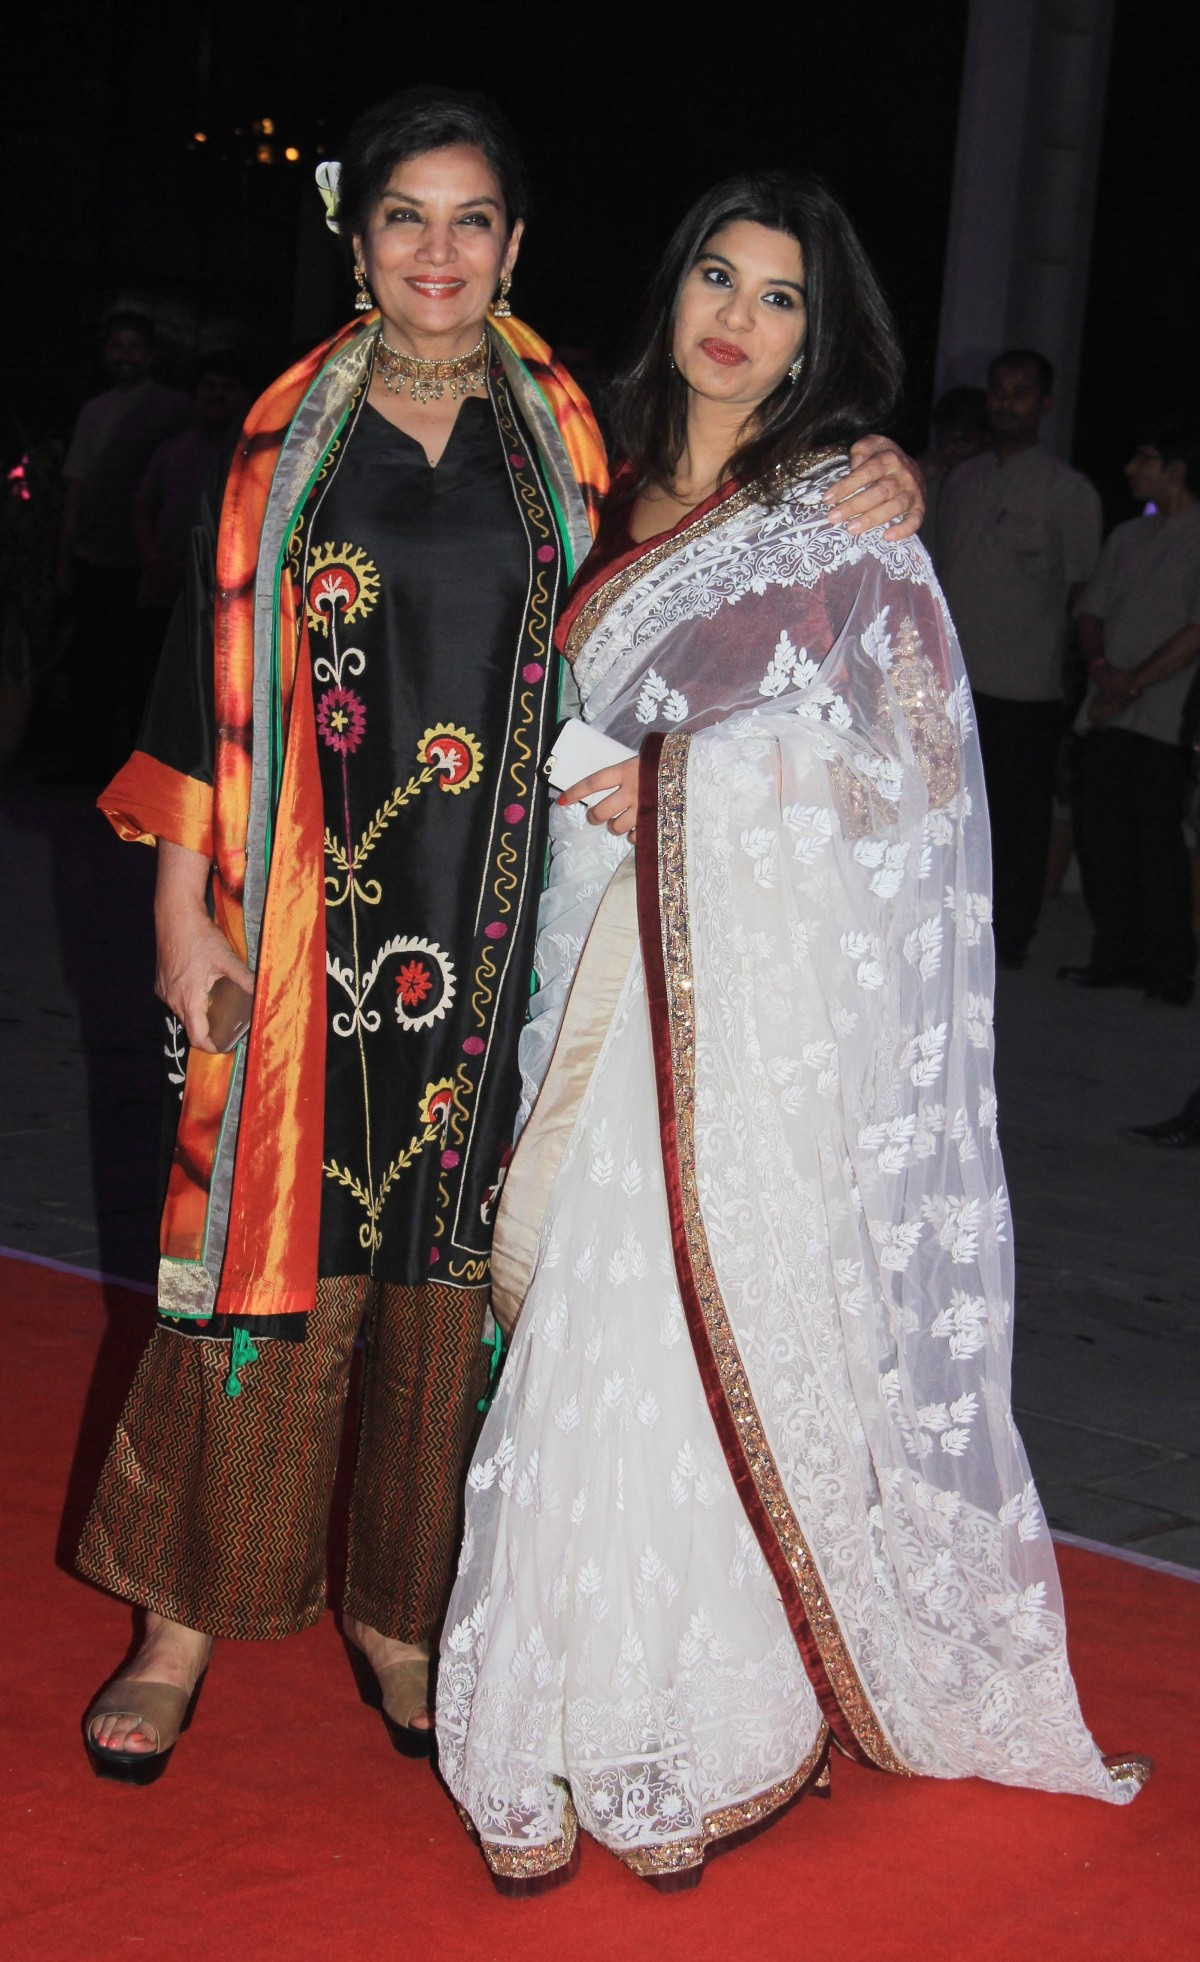 Shabana Azmi arrives for Kussh Sinha's reception party